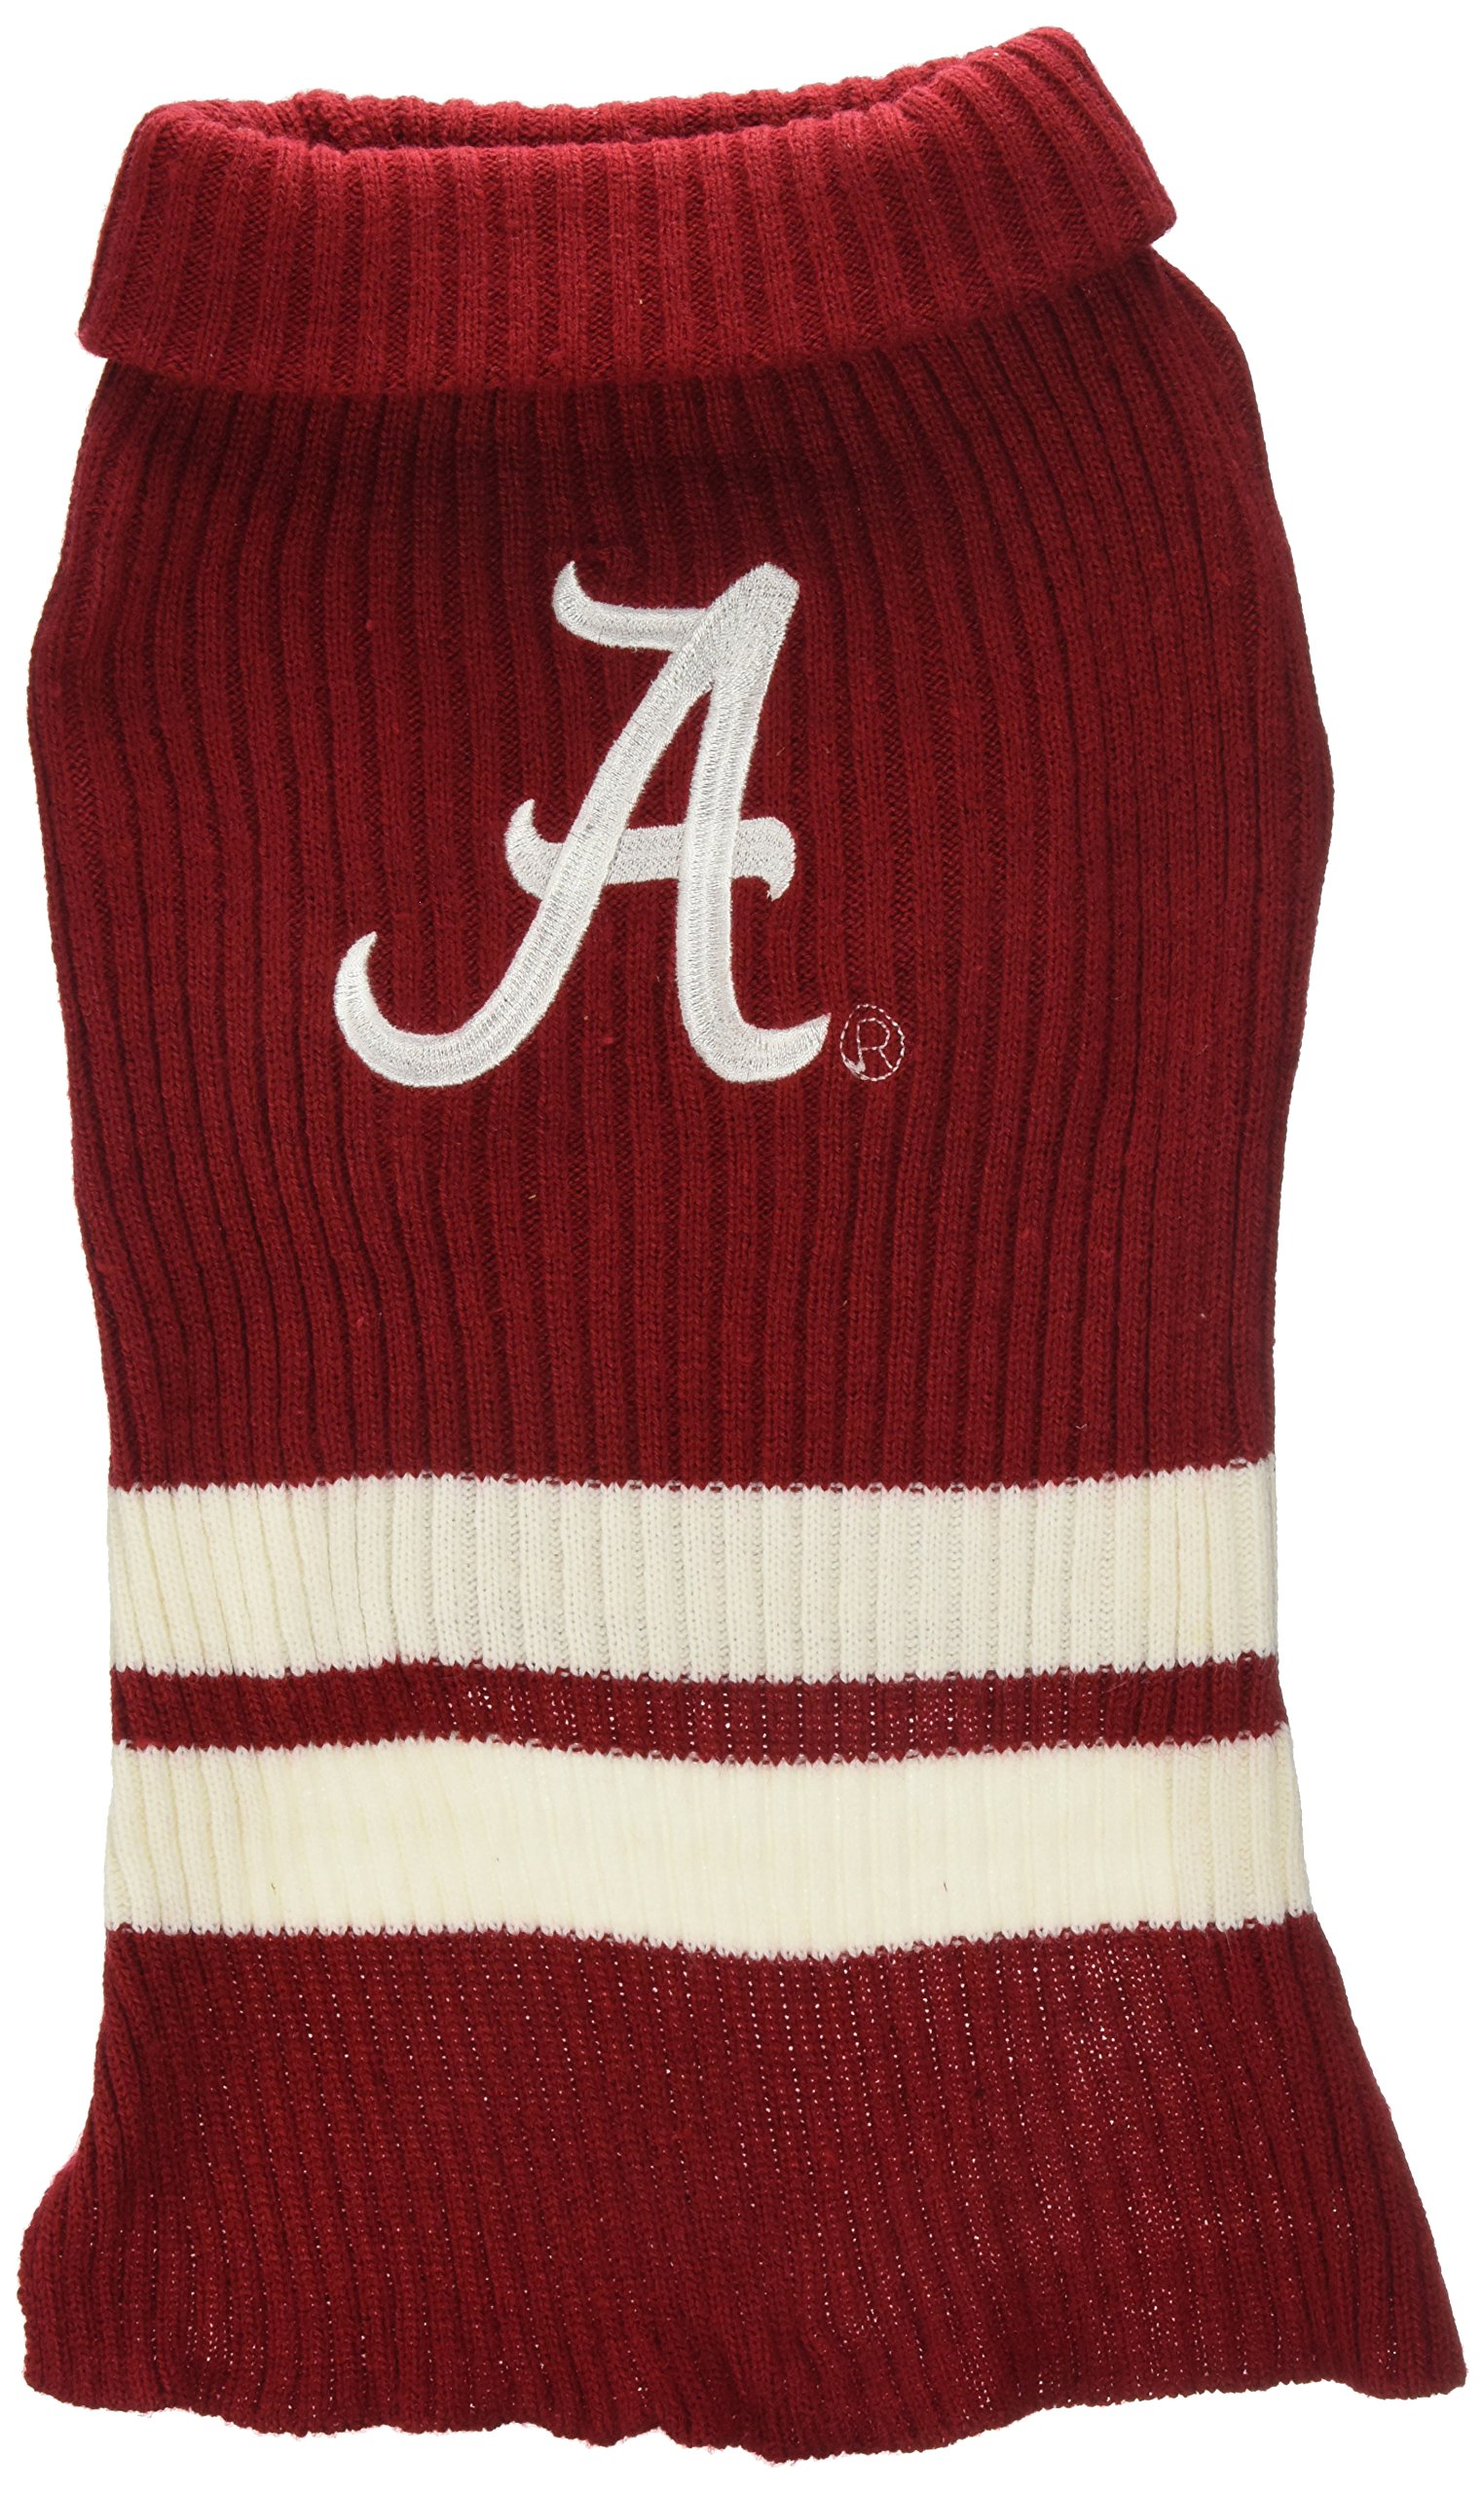 Pets First Collegiate Alabama Crimson Tide Pet Sweater, Medium